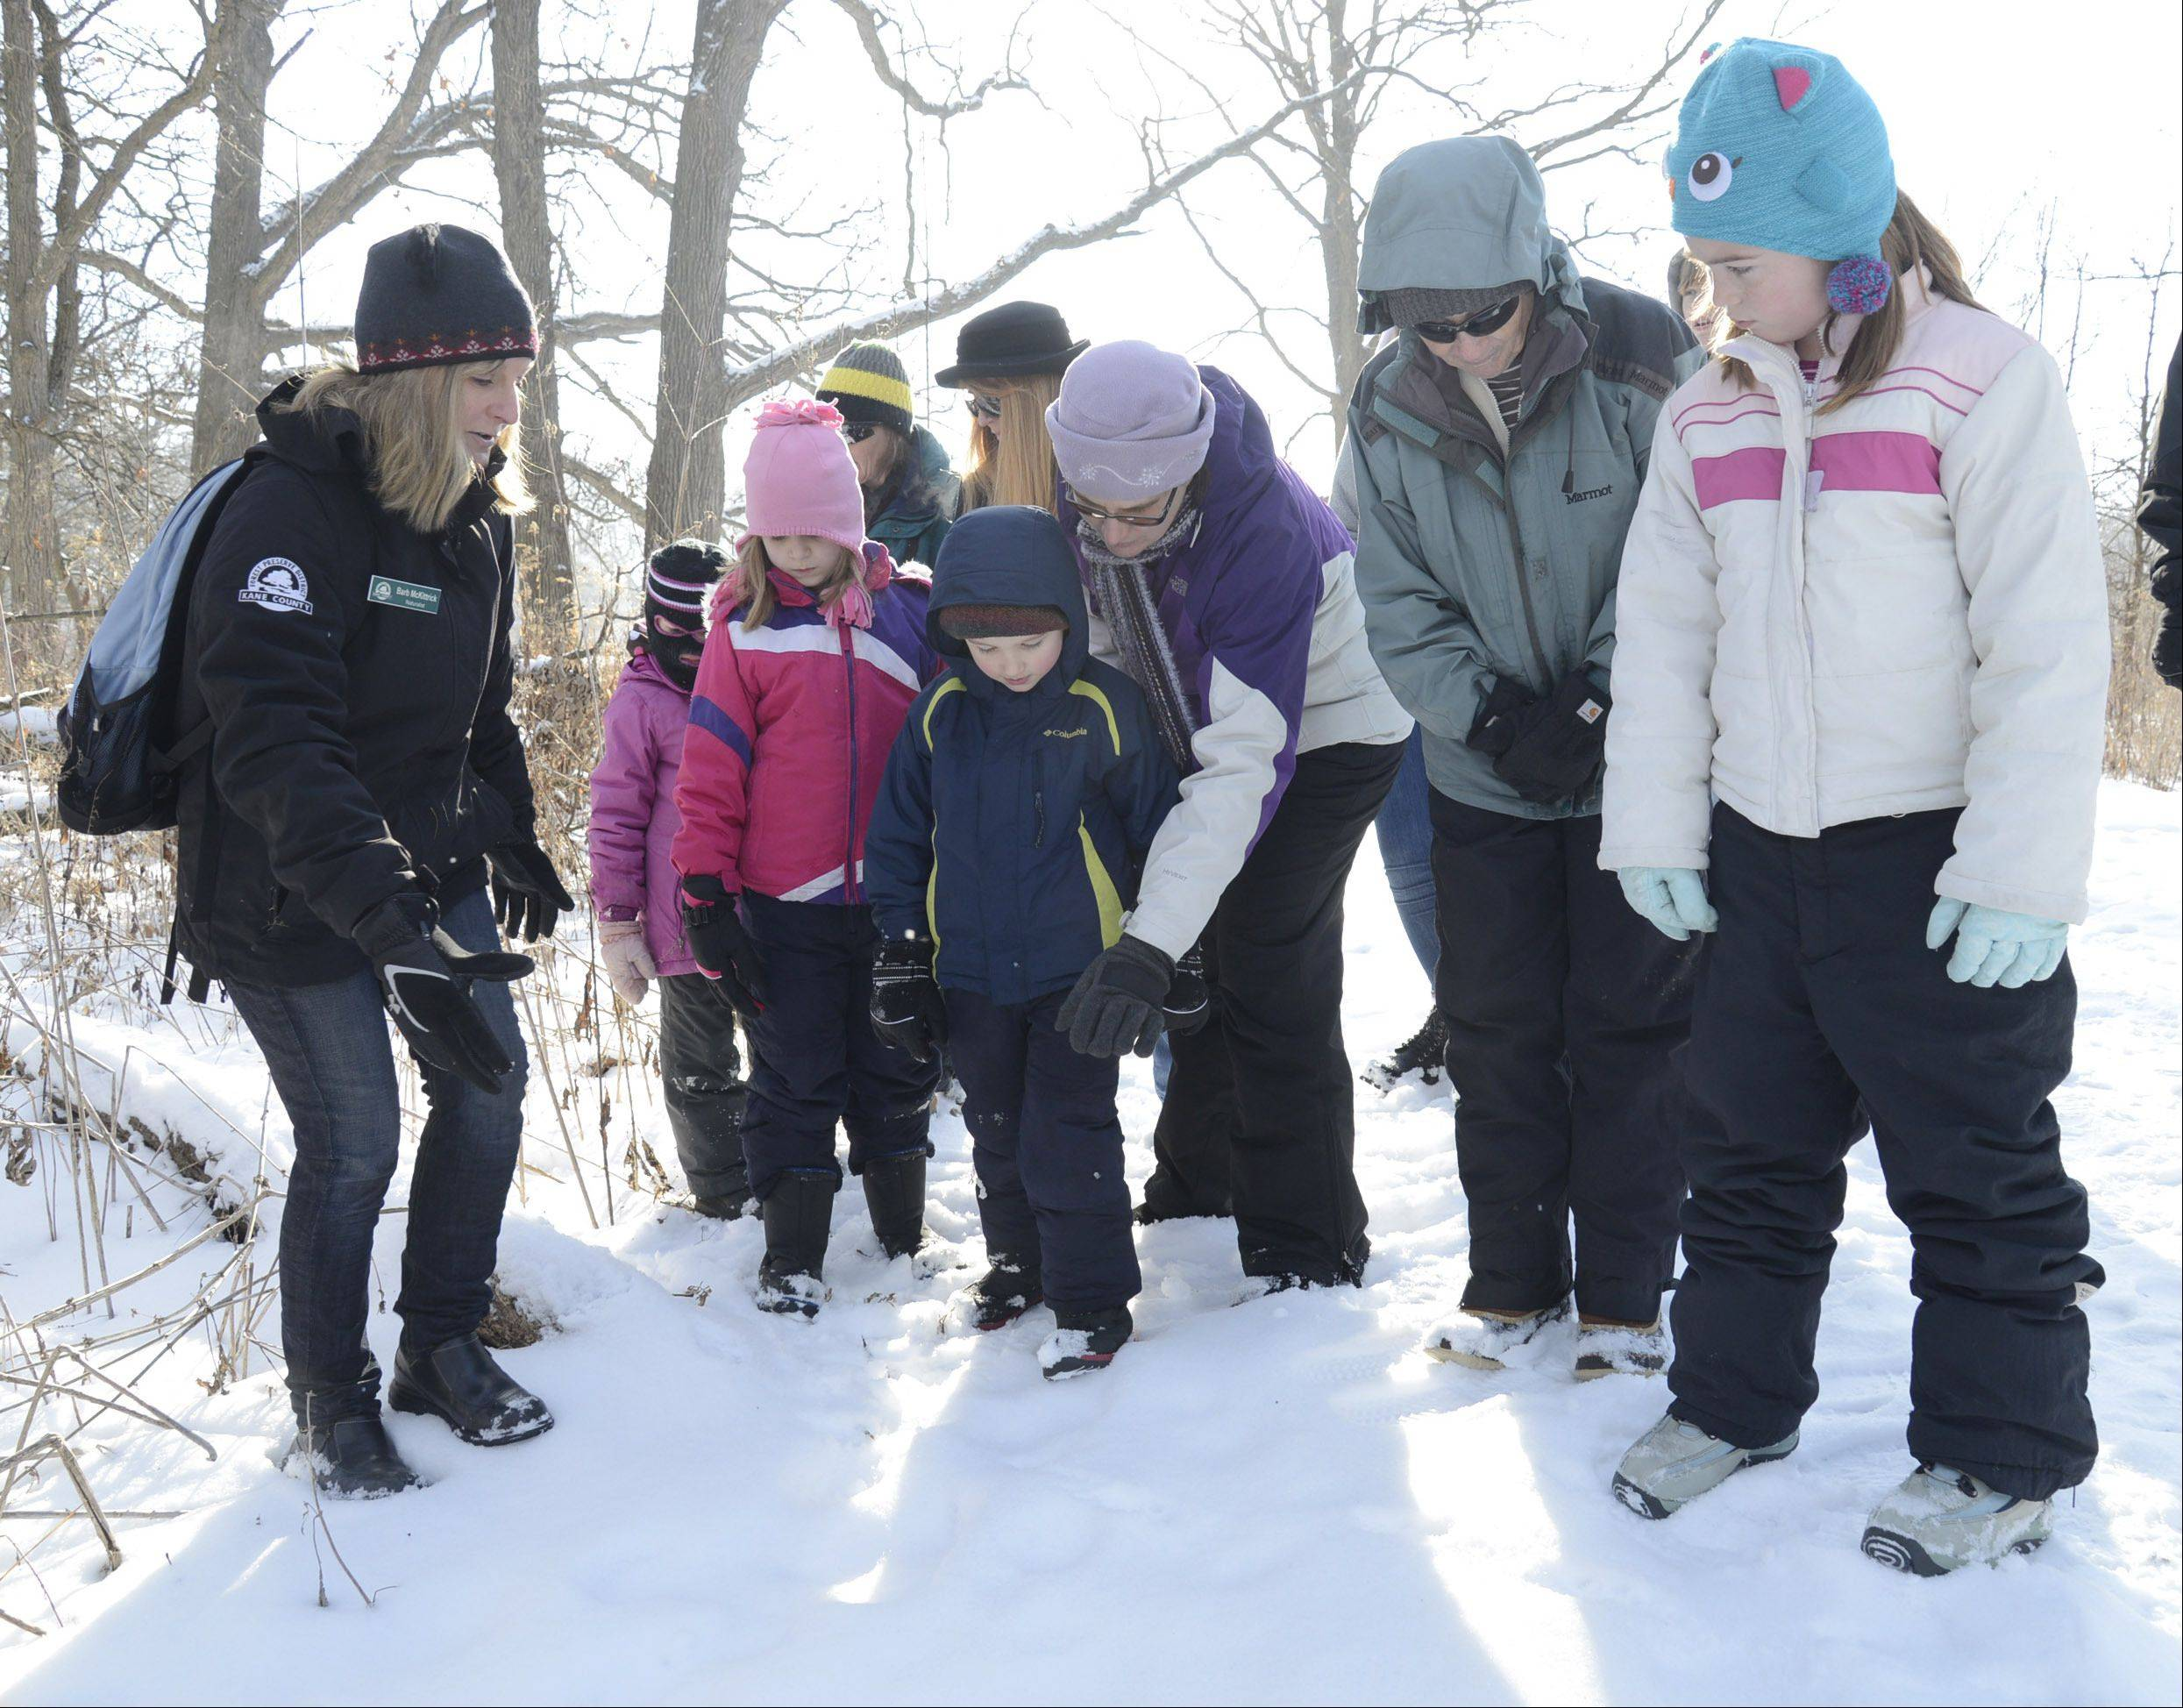 Kane County Forest Preserve naturalist Barb McKittrick, left, identifies raccoon tracks in the snow during a tracking and scavenger hunt program at Bliss Woods Forest Preserve in Sugar Grove on Friday. Lisel Ulaszek of Campton Hills (center) points out the tracks to her son, Oliver, 4, next to Pat Schaefer of Elburn and her granddaughter Shannon Dame, 9, visiting from Michigan.